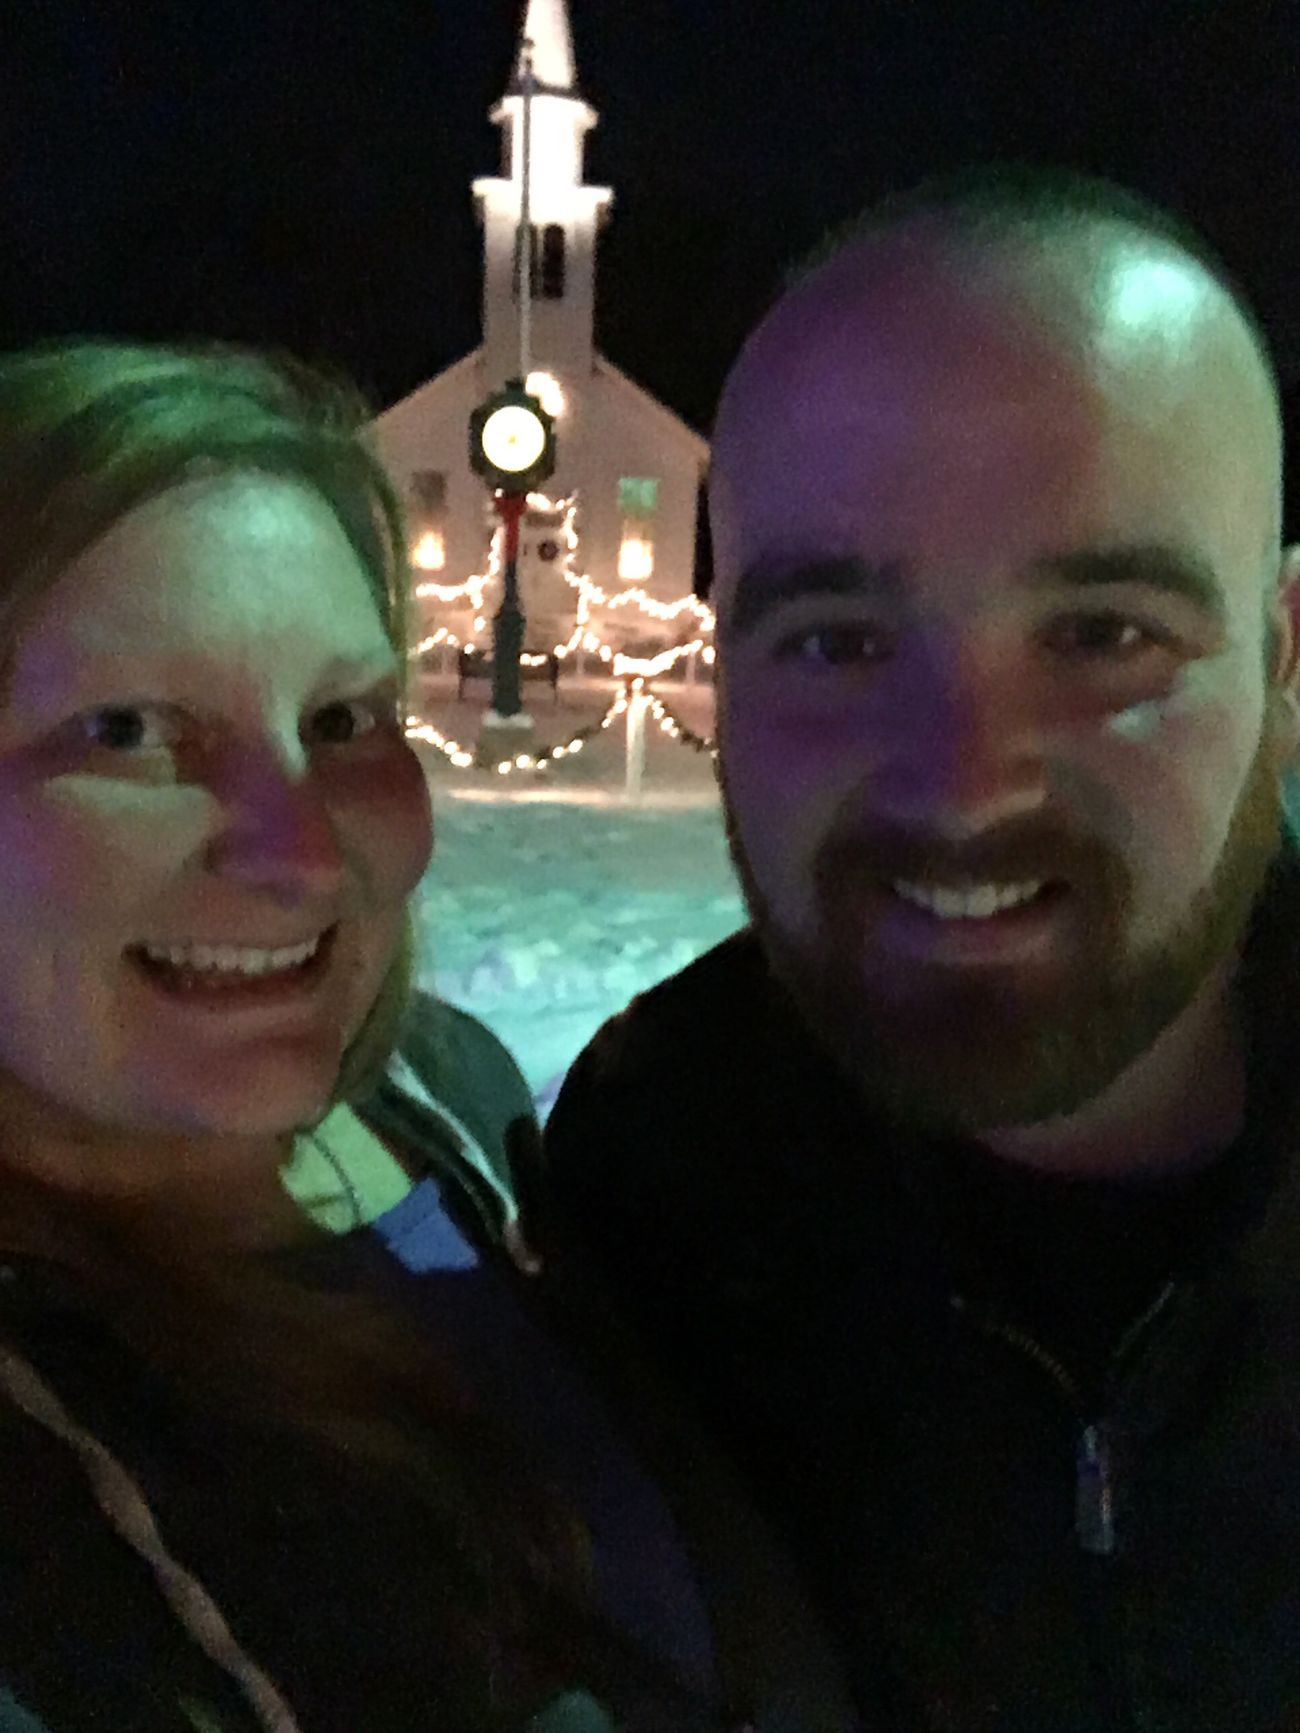 Happiness Night IPhone I ❤️️ Photography Togetherness Christmas Lights Couple - Relationship Love Boyfriend My Man